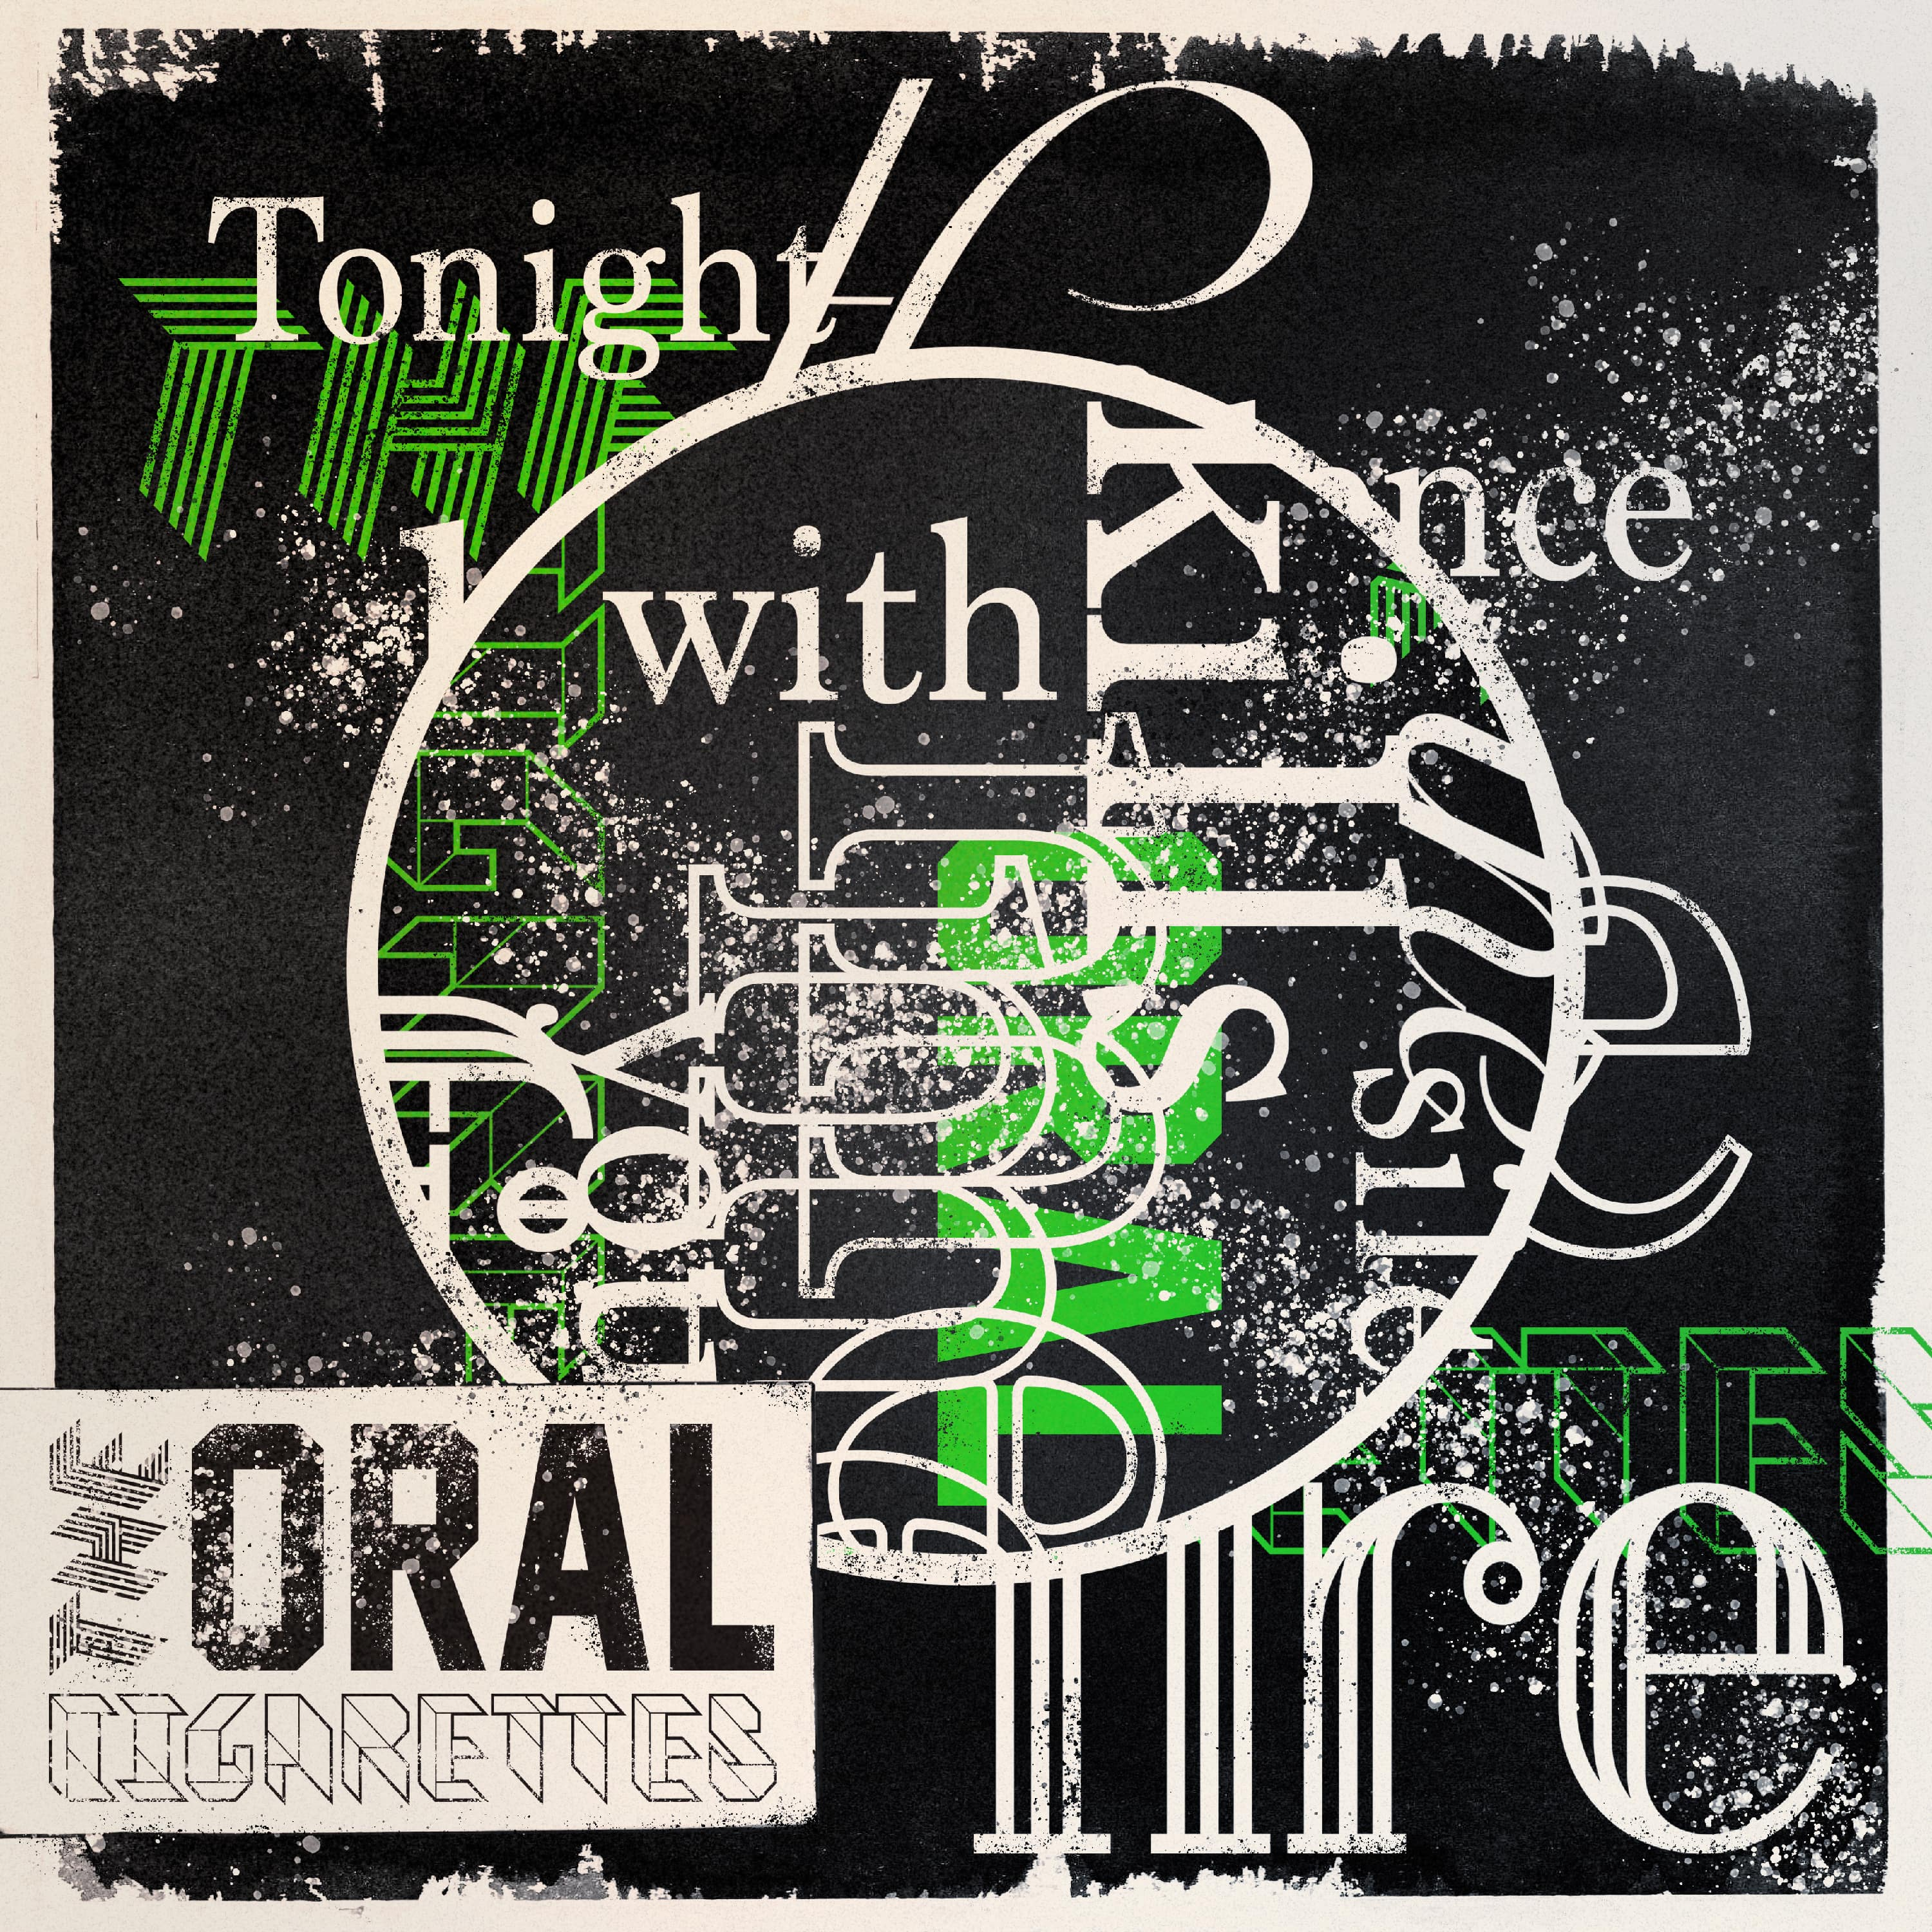 Digital Single「Tonight the silence kills me with your fire」